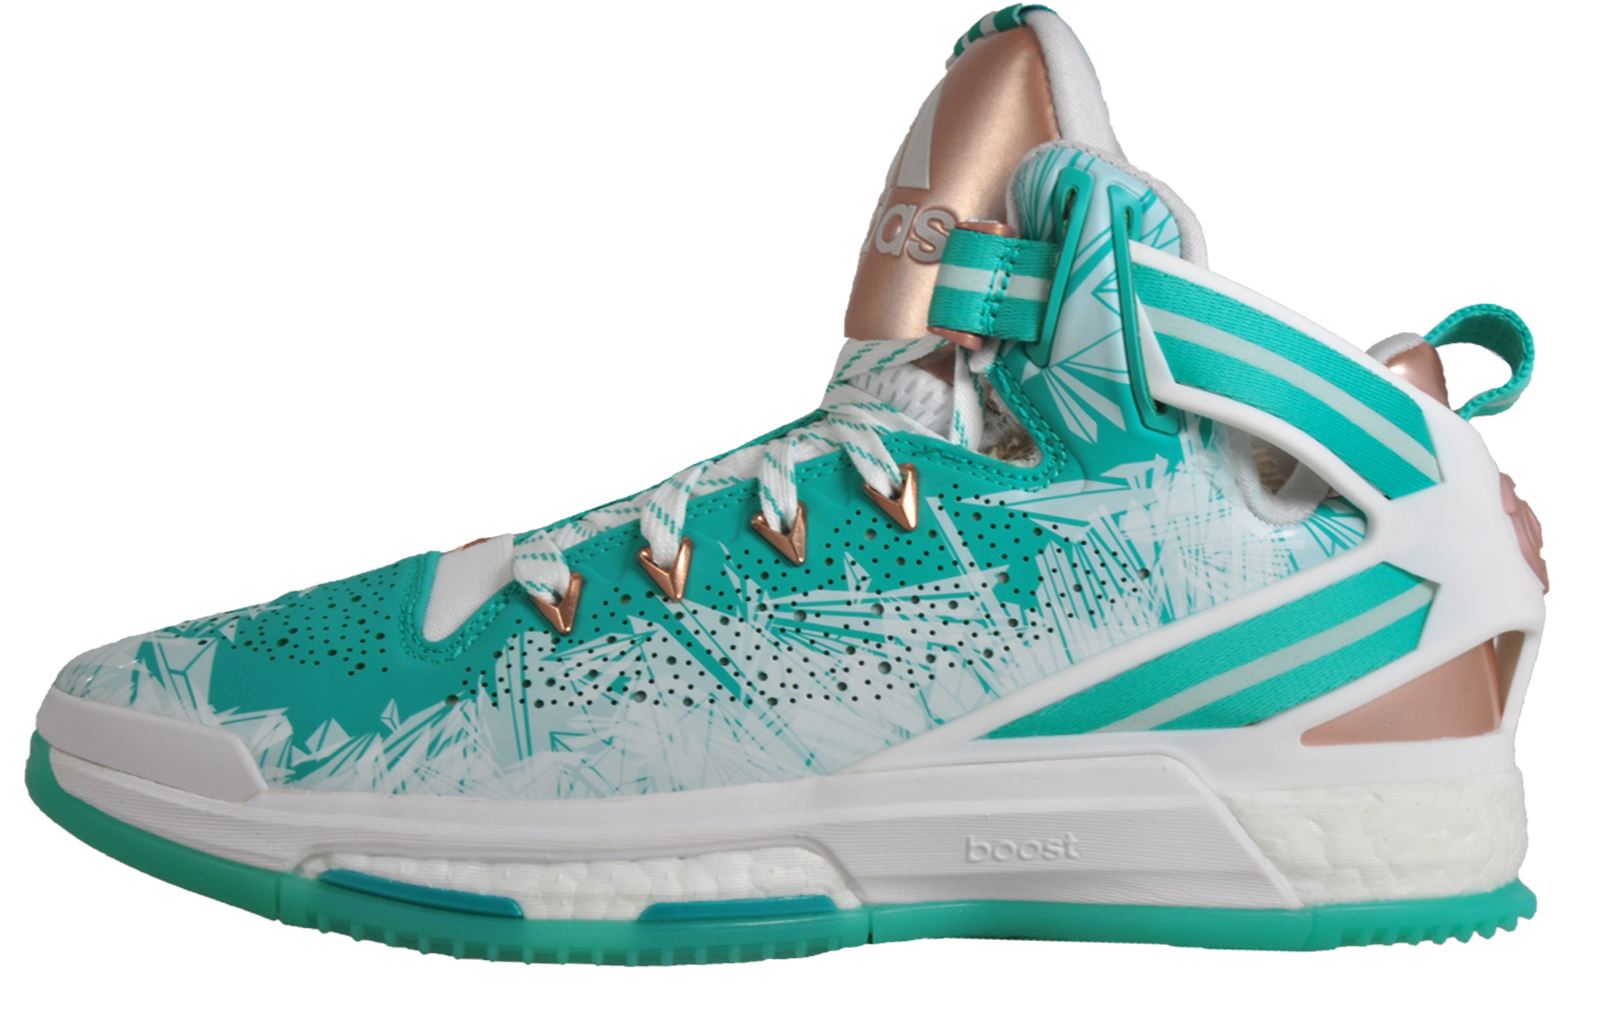 promo code da7b0 f0f68 Adidas D Rose 6 Boost Limited Edition Pro Mens Basketball Shoes Trainers  Green